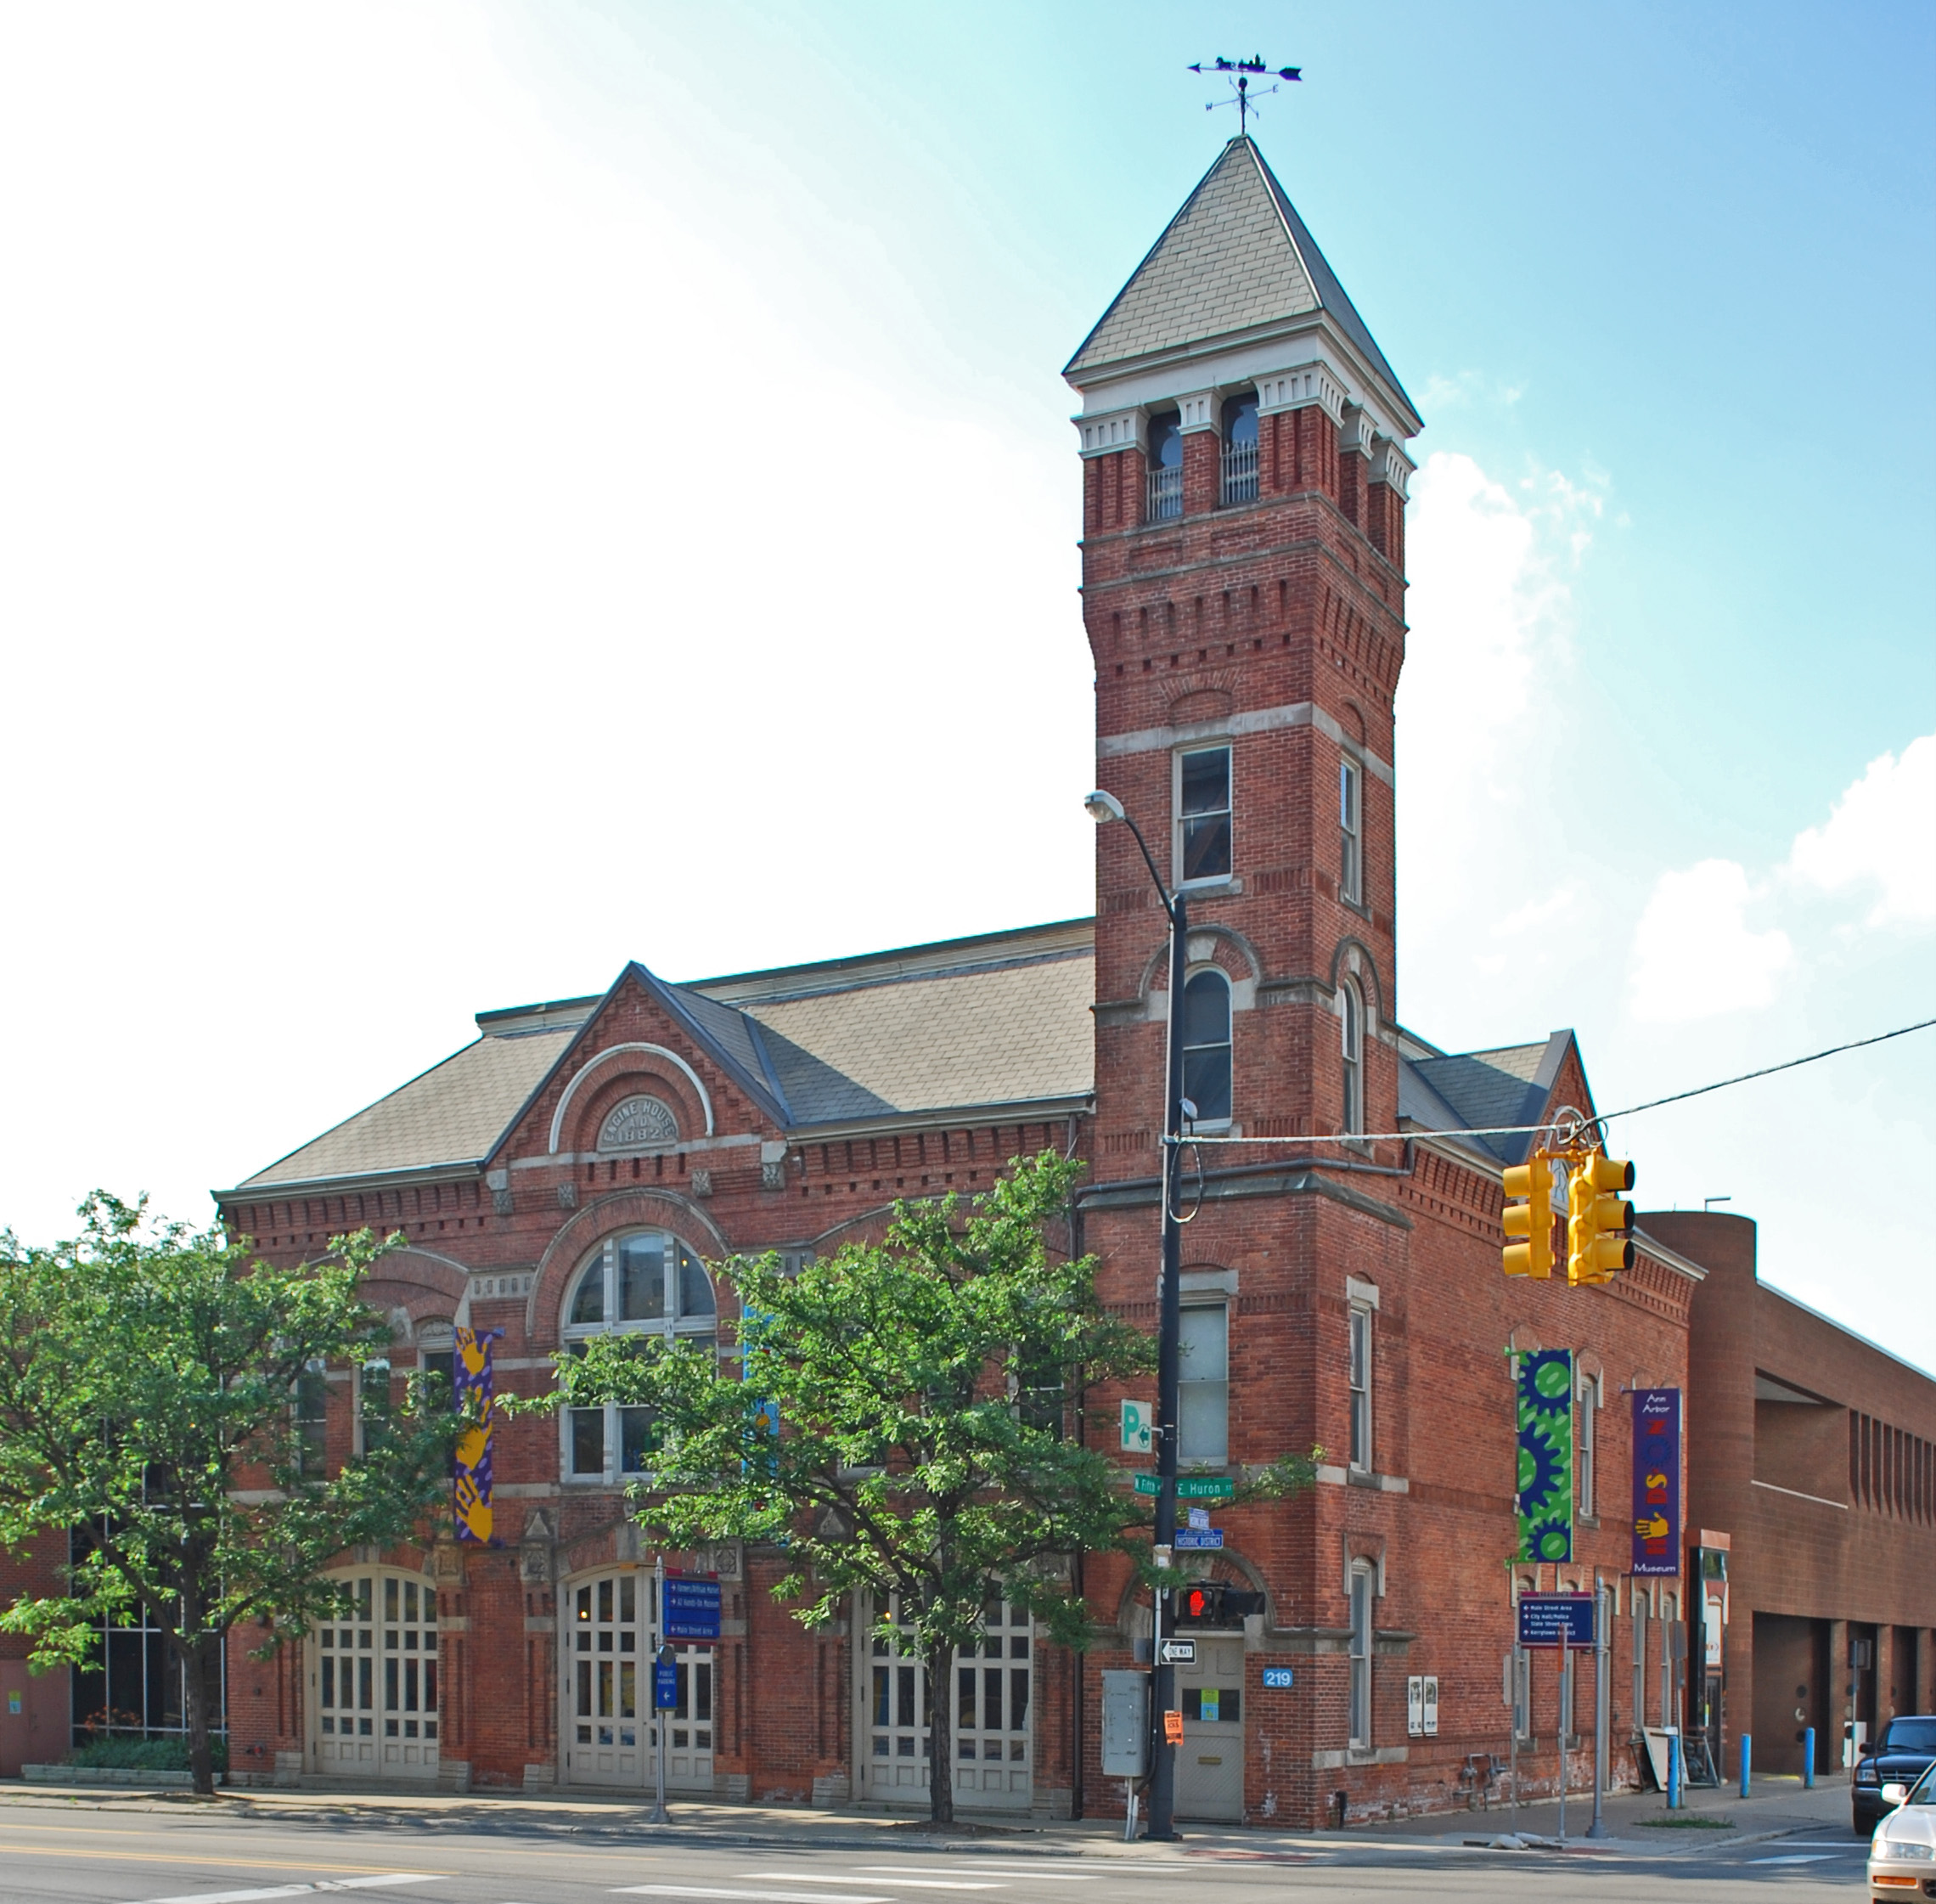 Ann Arbor Central Fire Station